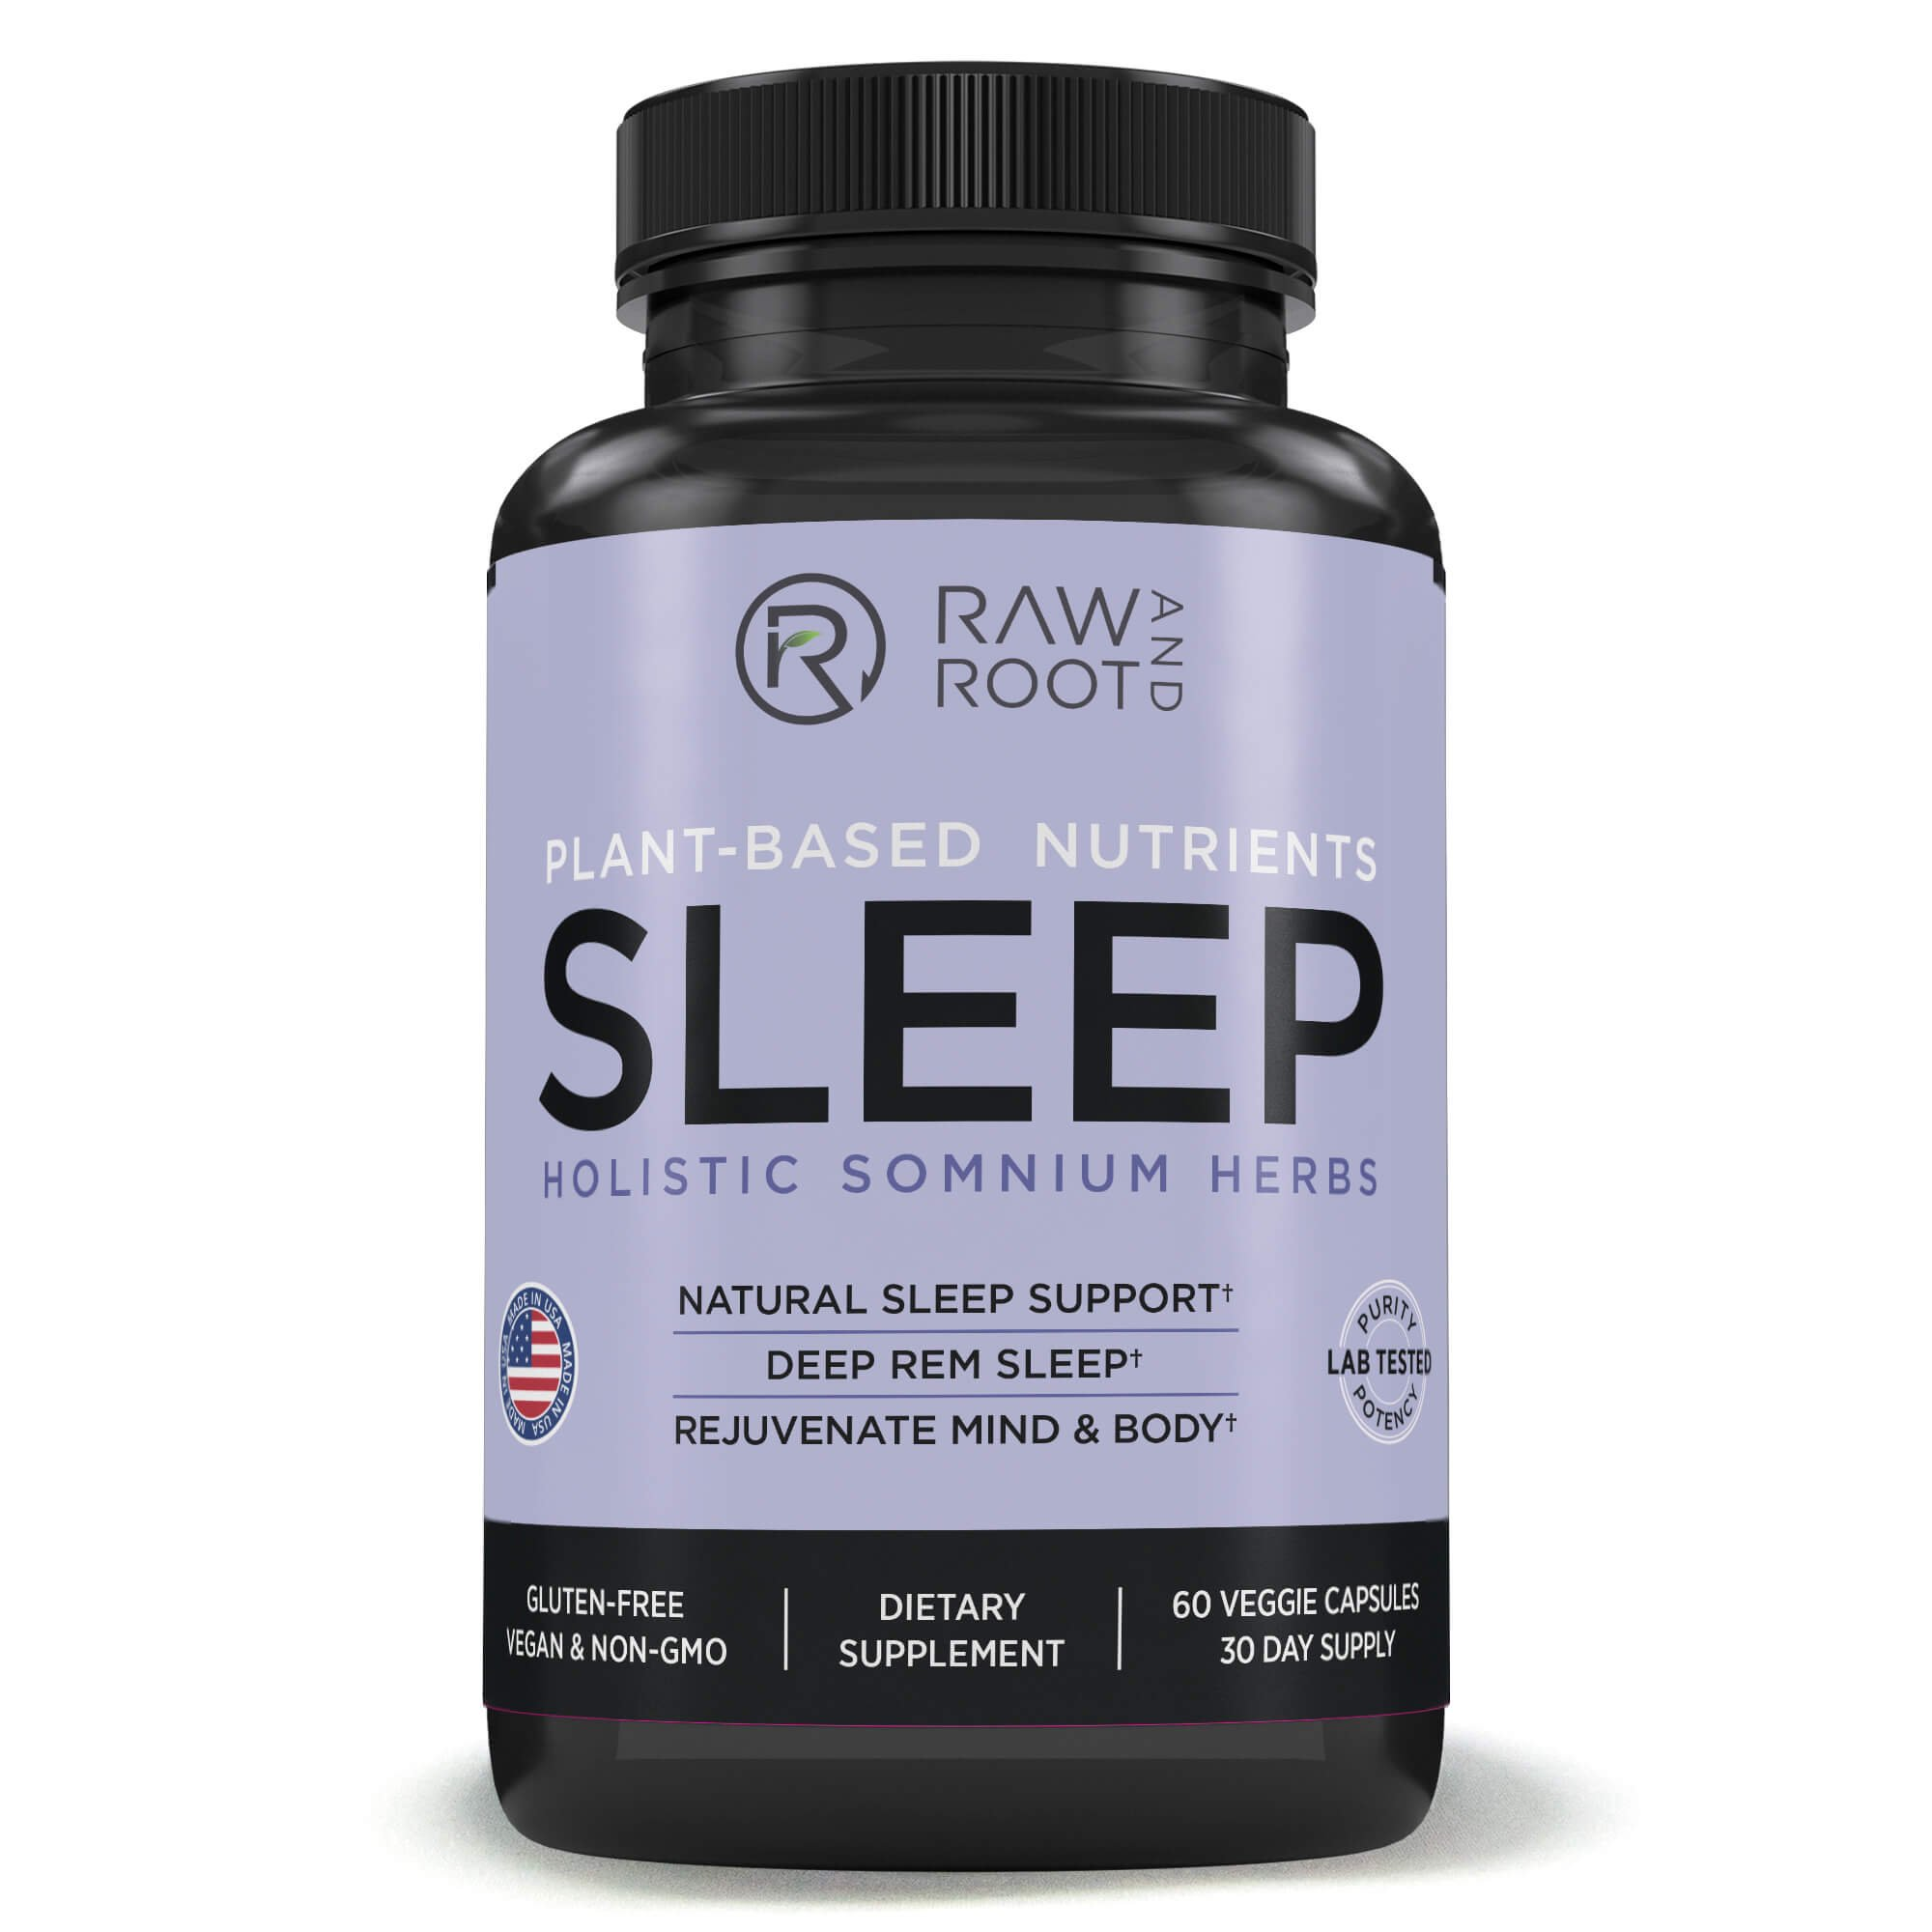 Sleep (Holistic Somnium Herbs) - Valerian and Other Natural Sleep Aid Herbs for Deep Sleep & Insomnia Relief - Dietary Supplement - 60 Vegetarian Capsules - by RAW AND ROOT